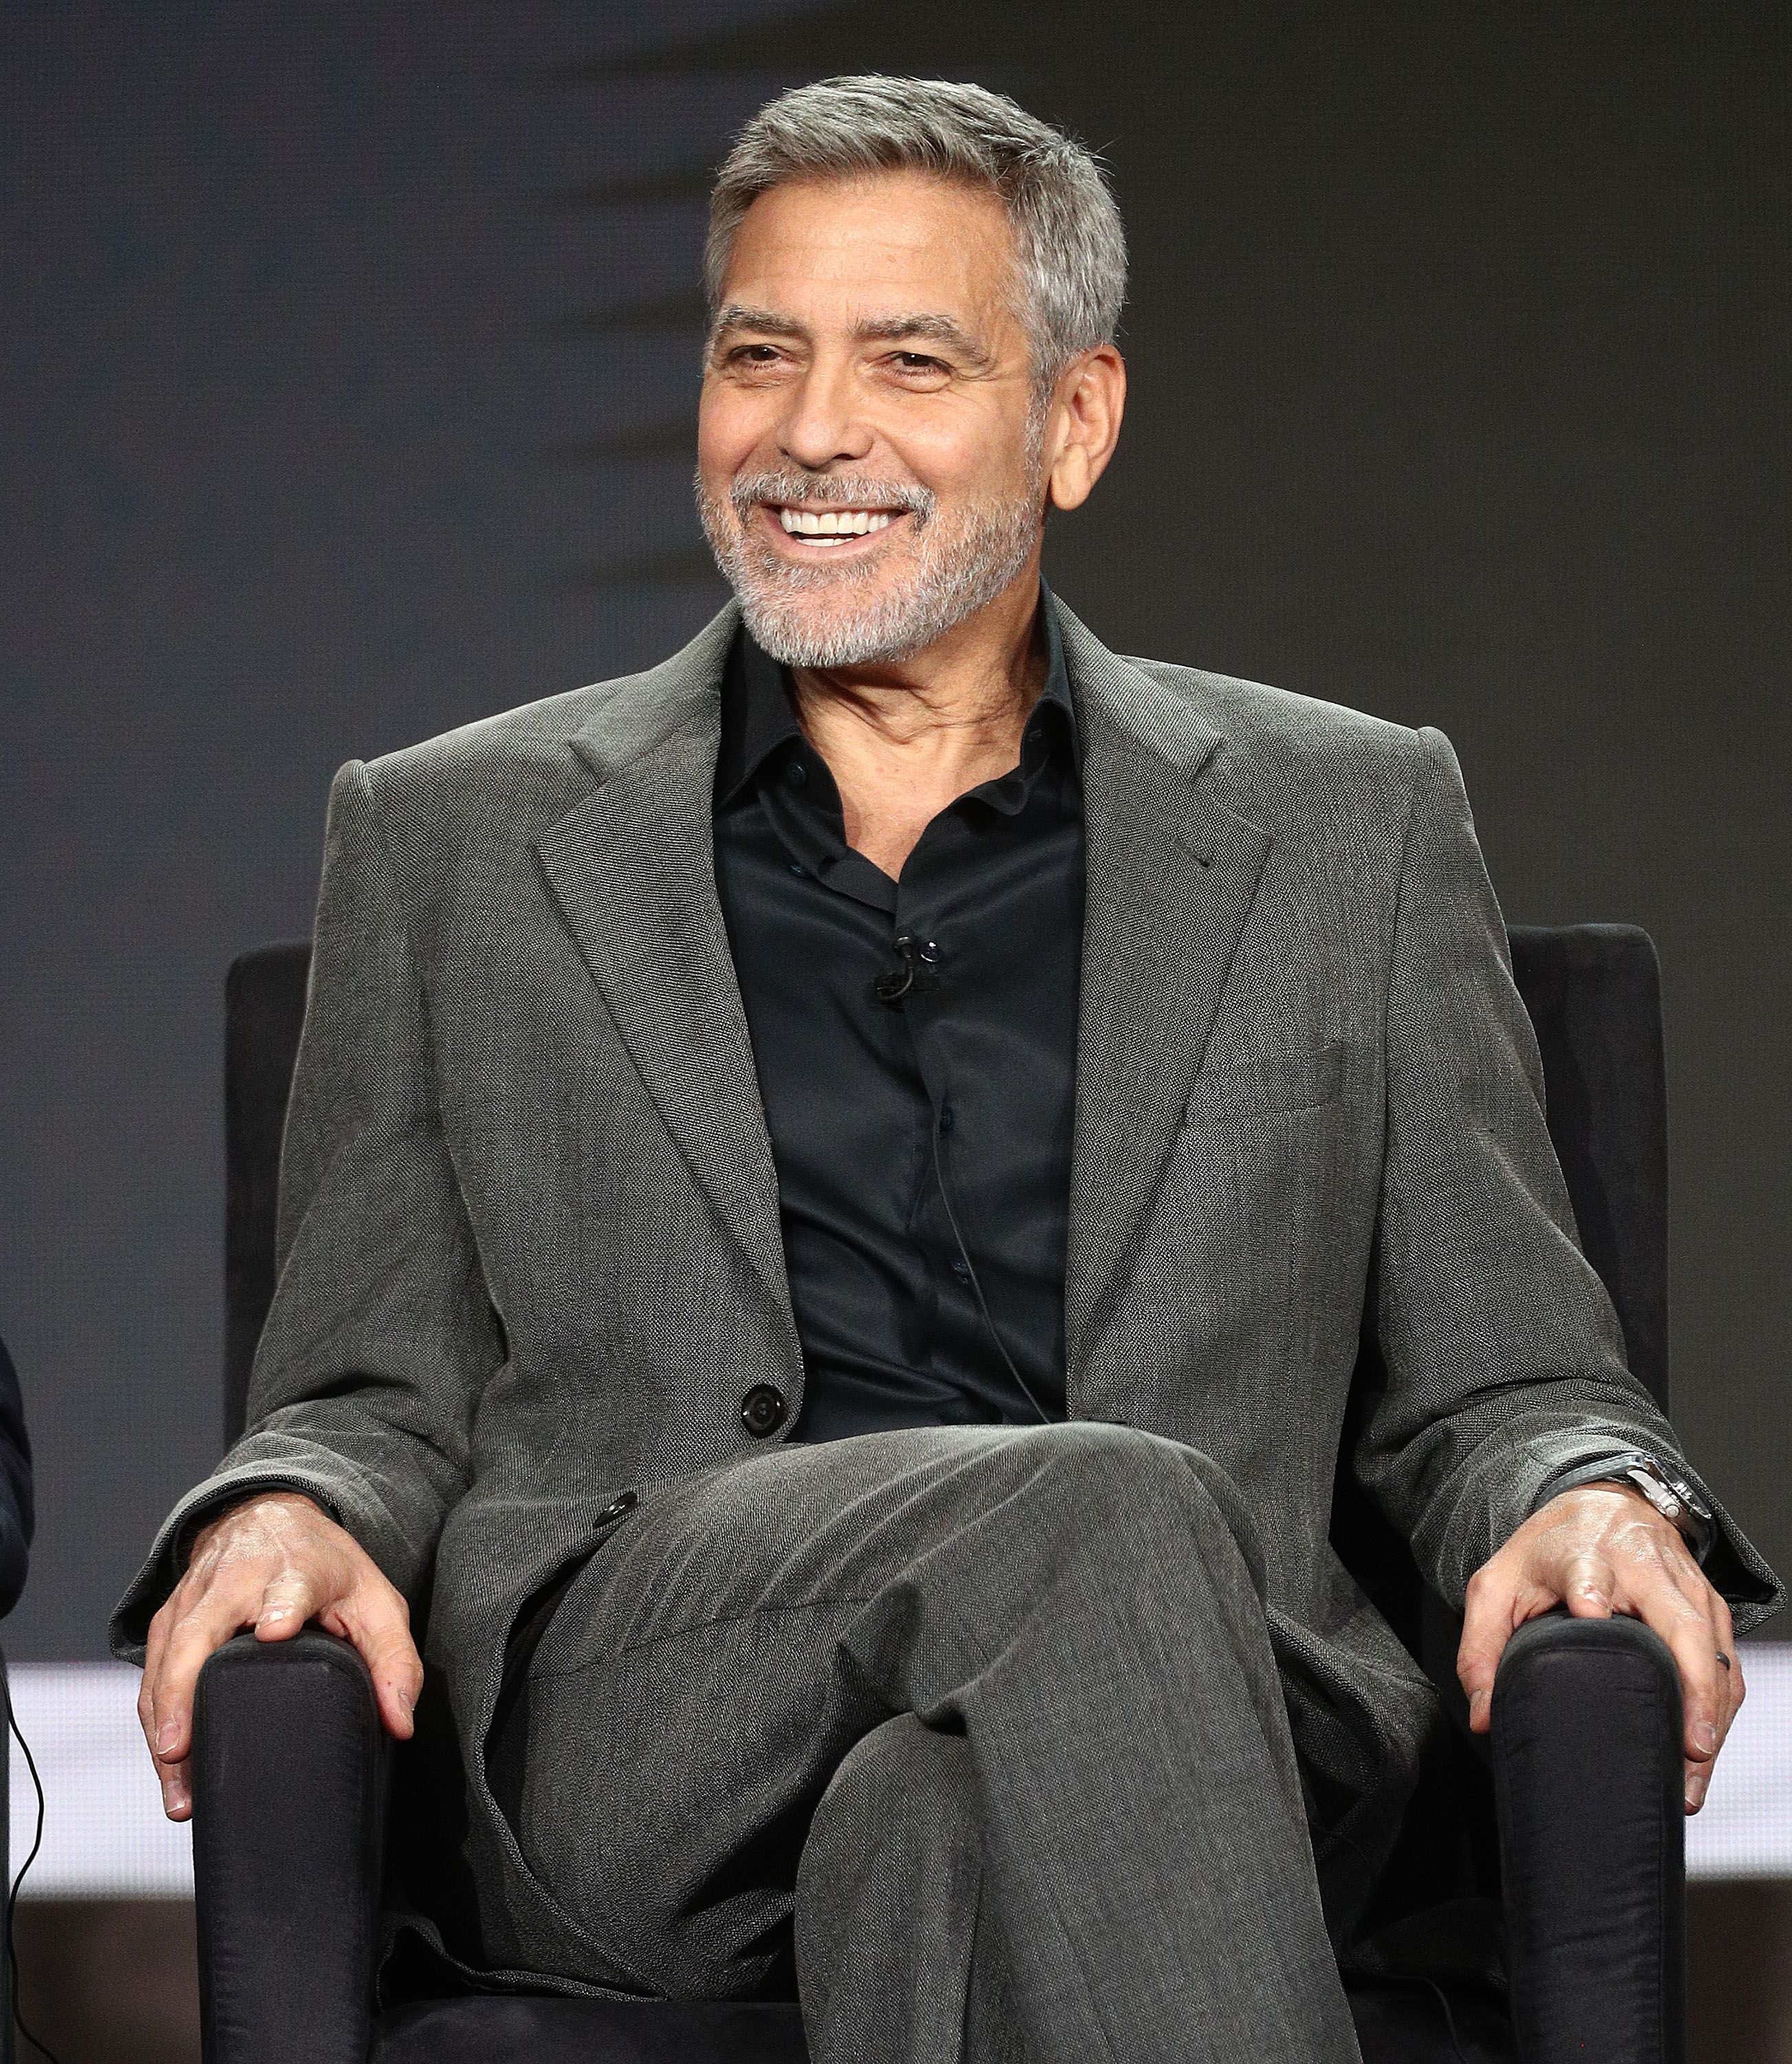 """George Clooney of the television show """"Catch 22"""" speaks at the Hulu segment of the 2019 Winter Television Critics Association Press Tour at The Langham Huntington, Pasadena on February 11, 2019 